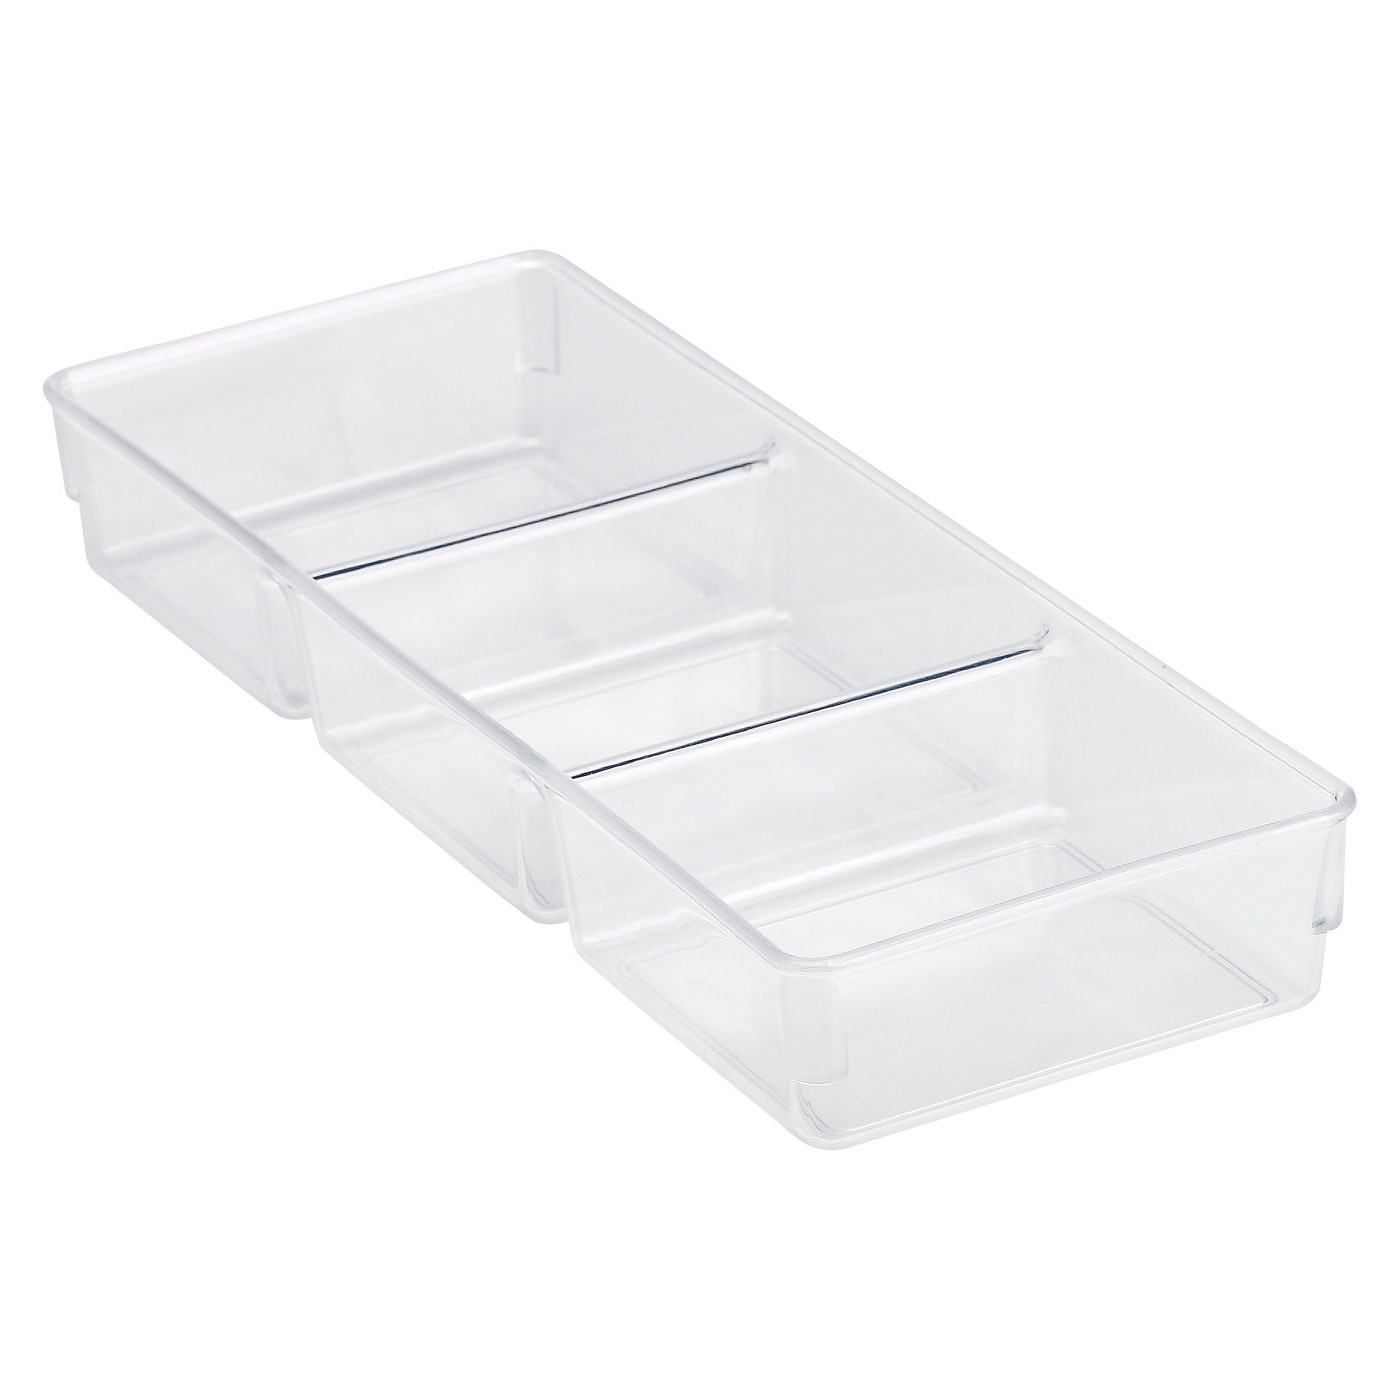 Sectioned Trays $13